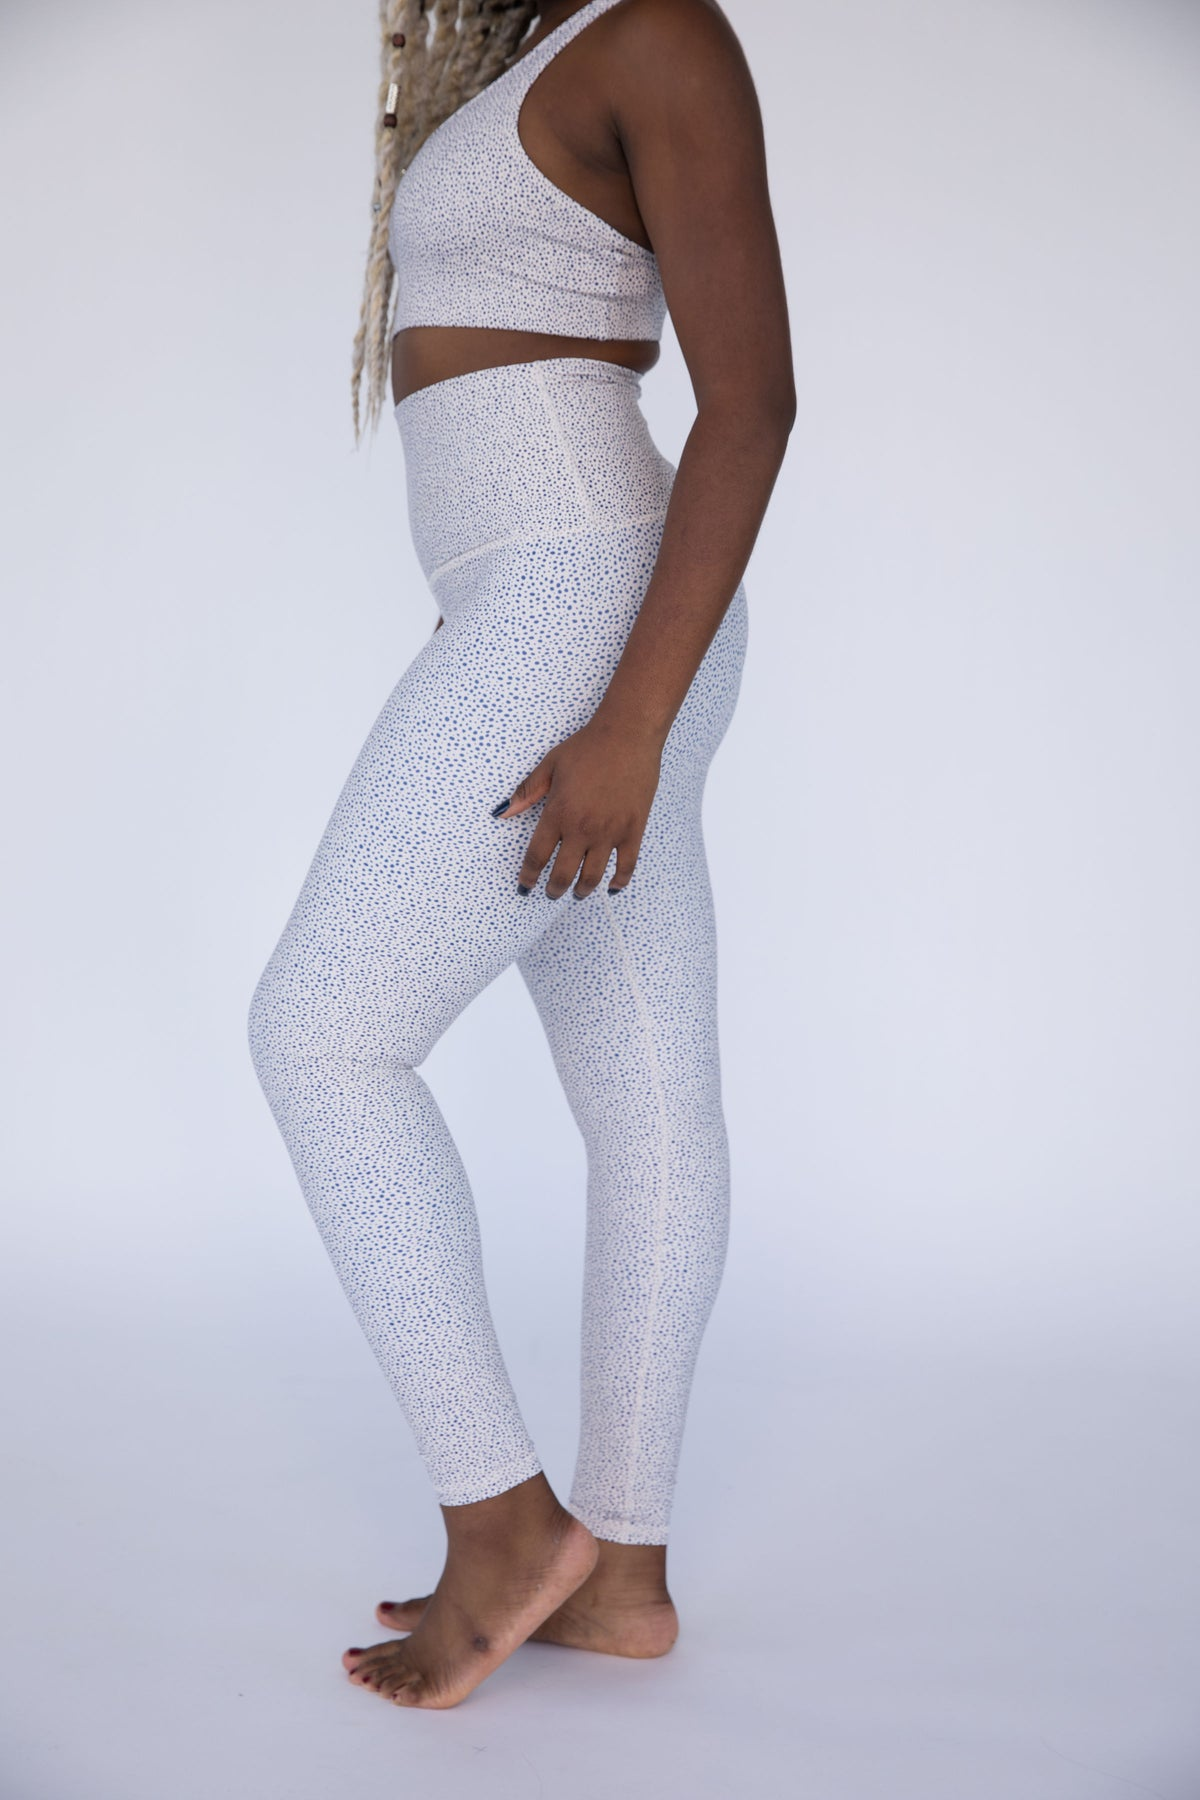 Spot On High Waisted Leggings - FINAL SALE